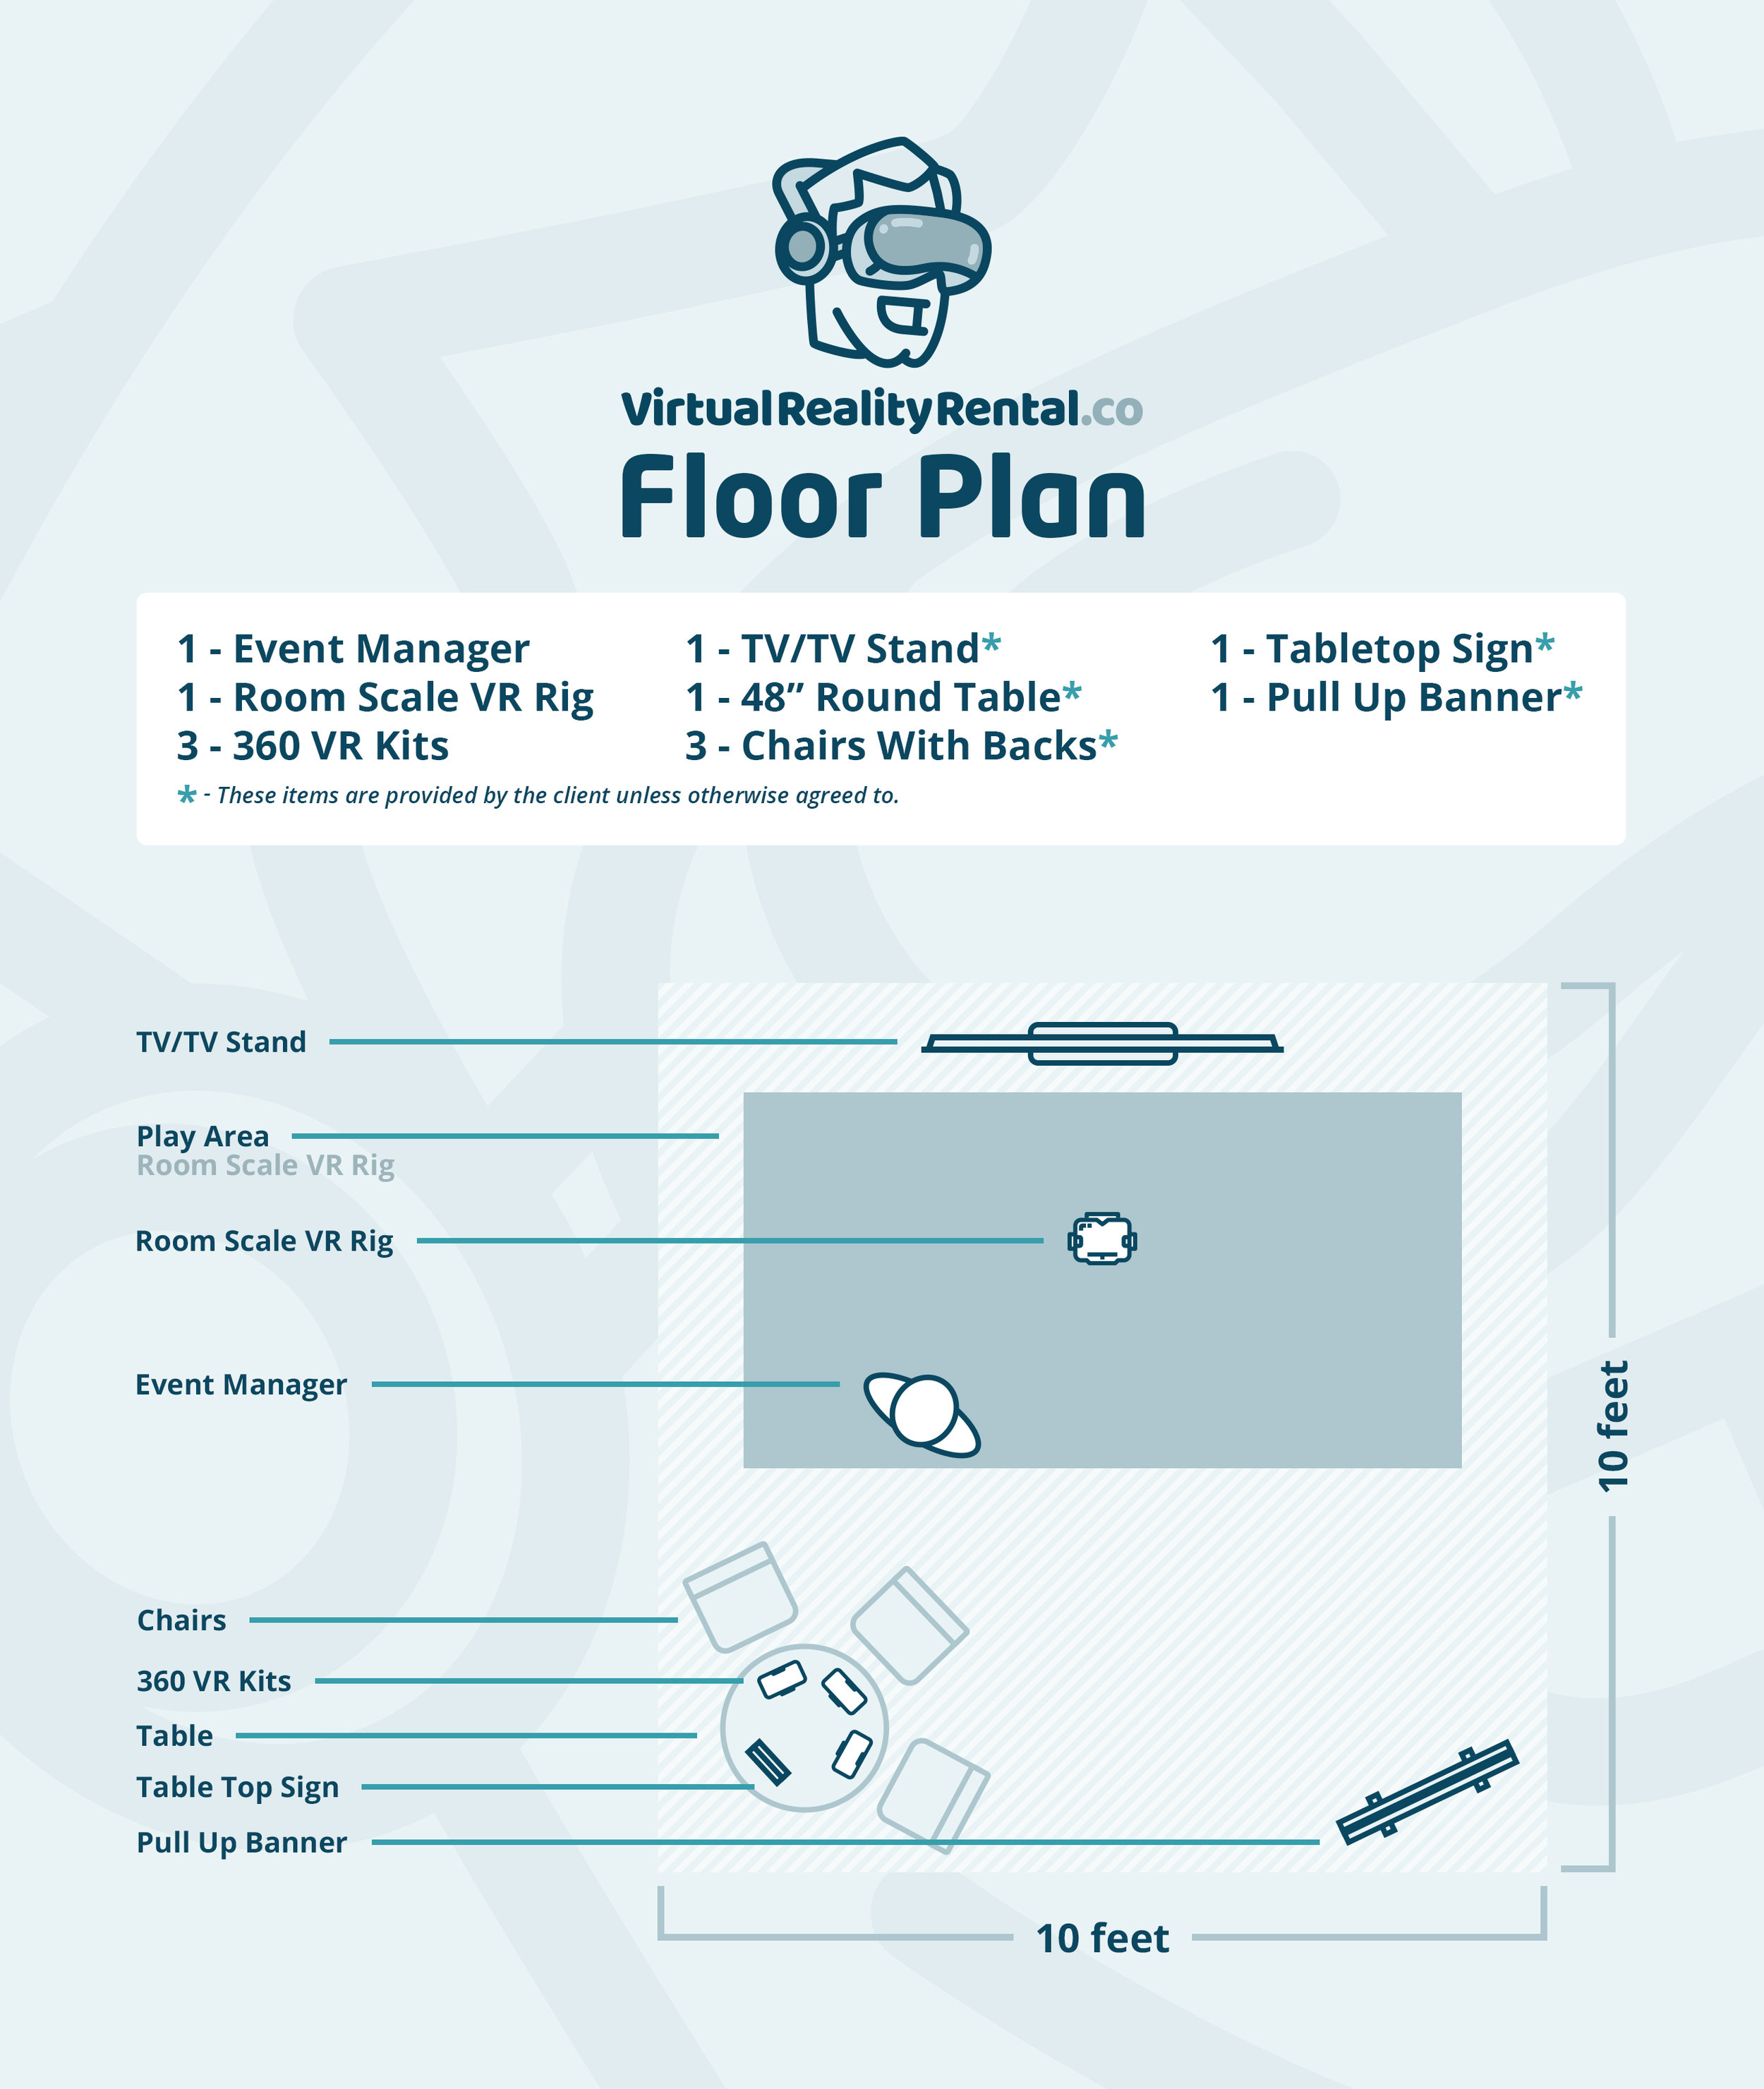 [Branded]_Floor_Plan_-_01_-_One_(1)_Event_Manager_+_One_(1)_Room_Scale_+_Three_(3)_360s (3).jpg